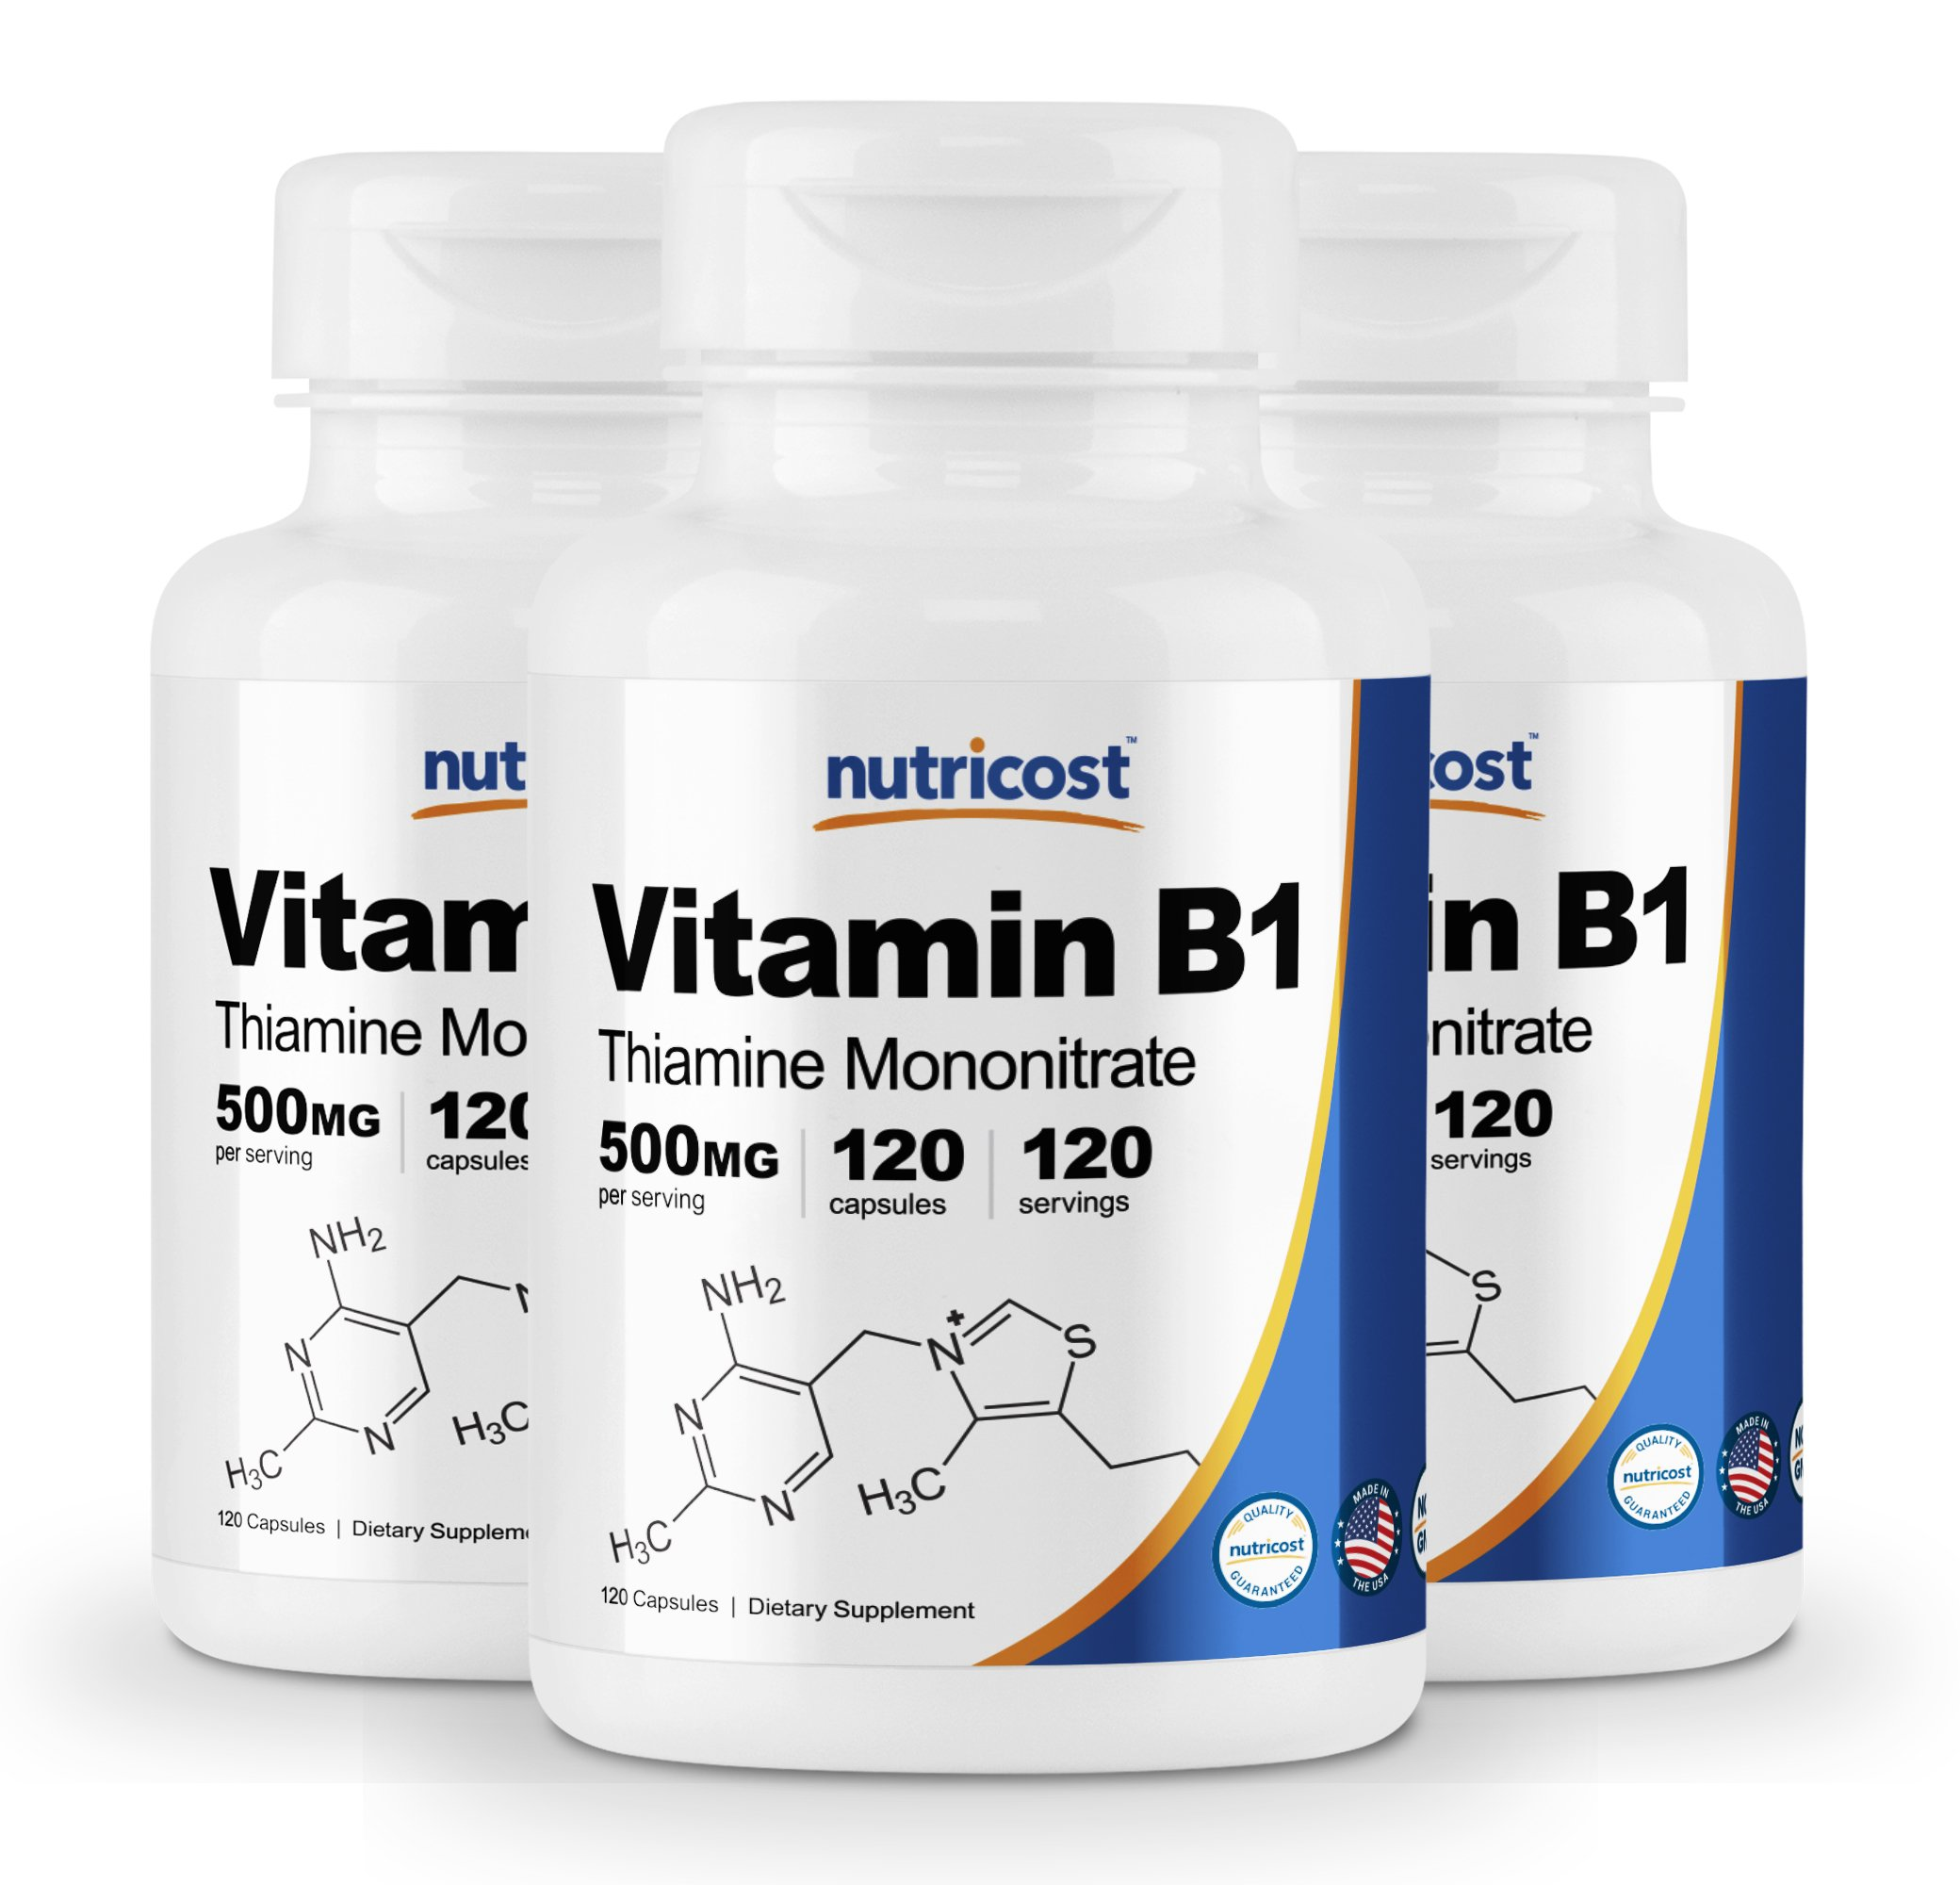 Nutricost Vitamin B1 (Thiamin) 500mg, 120 Capsules (3 Bottles) by Nutricost